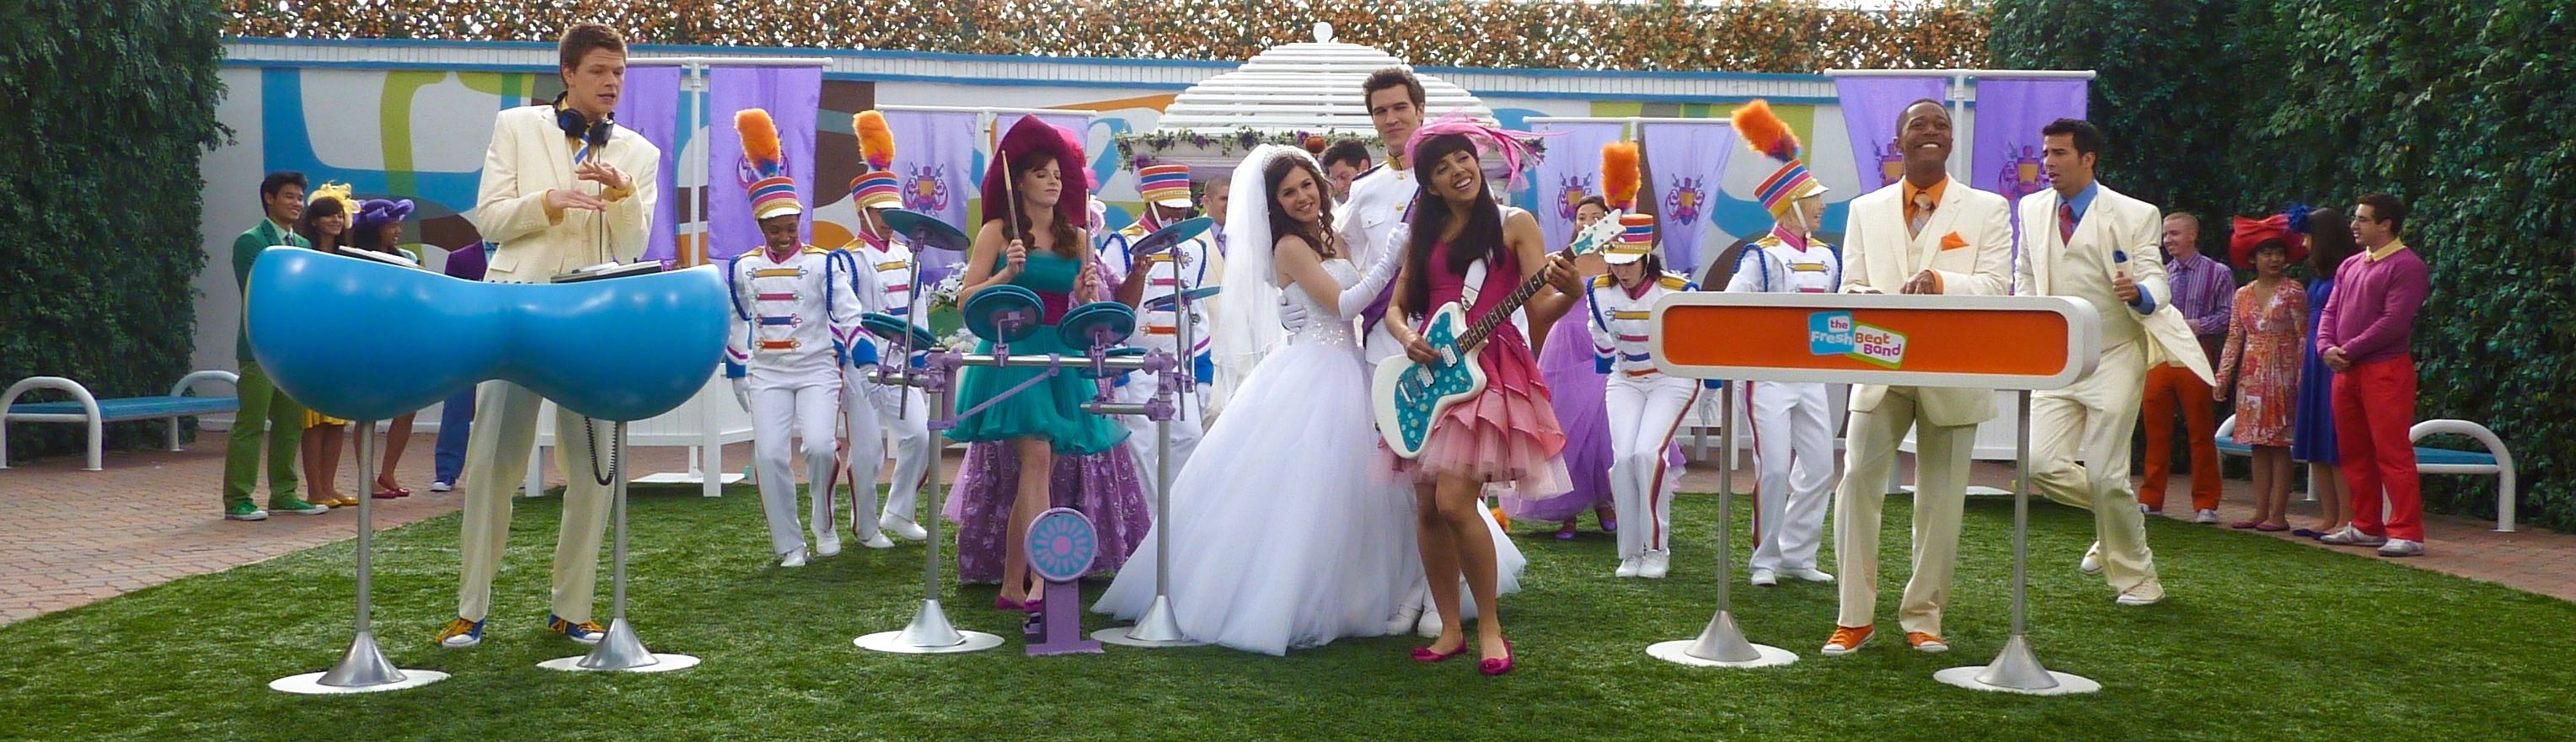 "THE FRESH BEAT BAND-""ROYAL WEDDING""-JOYCE KIM LEE, COSTUME DESIGNER"